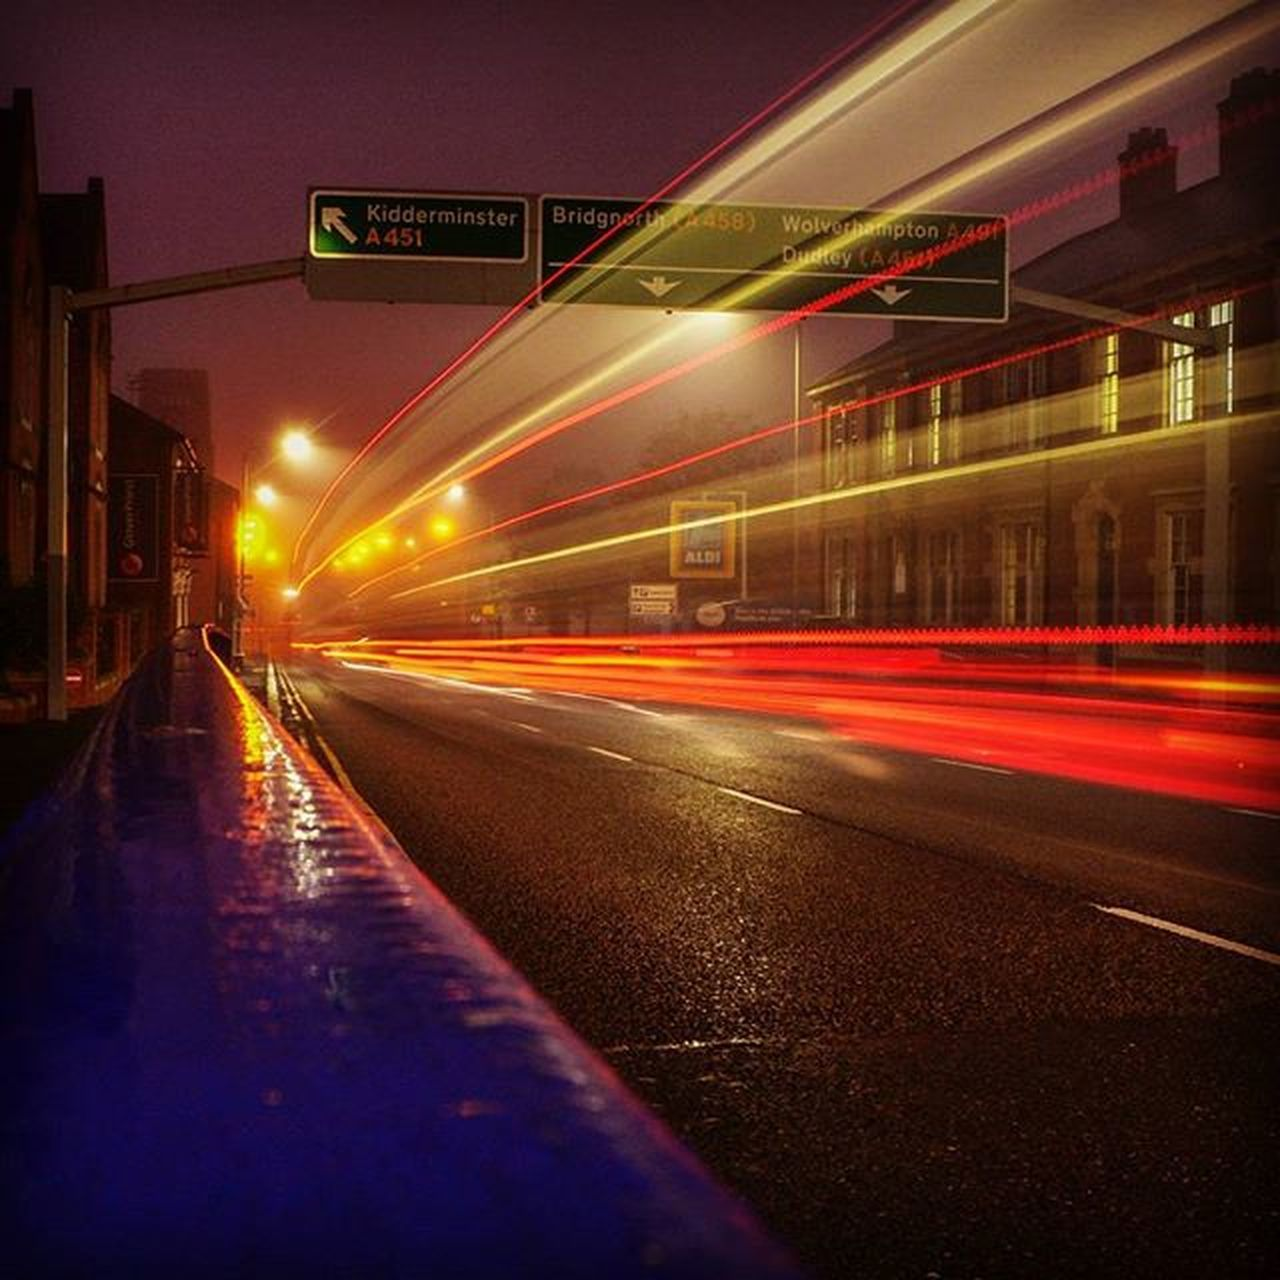 Early morning on the ring road Stourbridge Night Morning Longexposure Trail Light Lightpainting Urban Road Leica Iger Instagood Red Redlight POTD Dudley Stourbridge Leicacamera Blackcountry Westmidlands Longexposure Dawn Insta Westmidlandstravel Nationalexpress bus